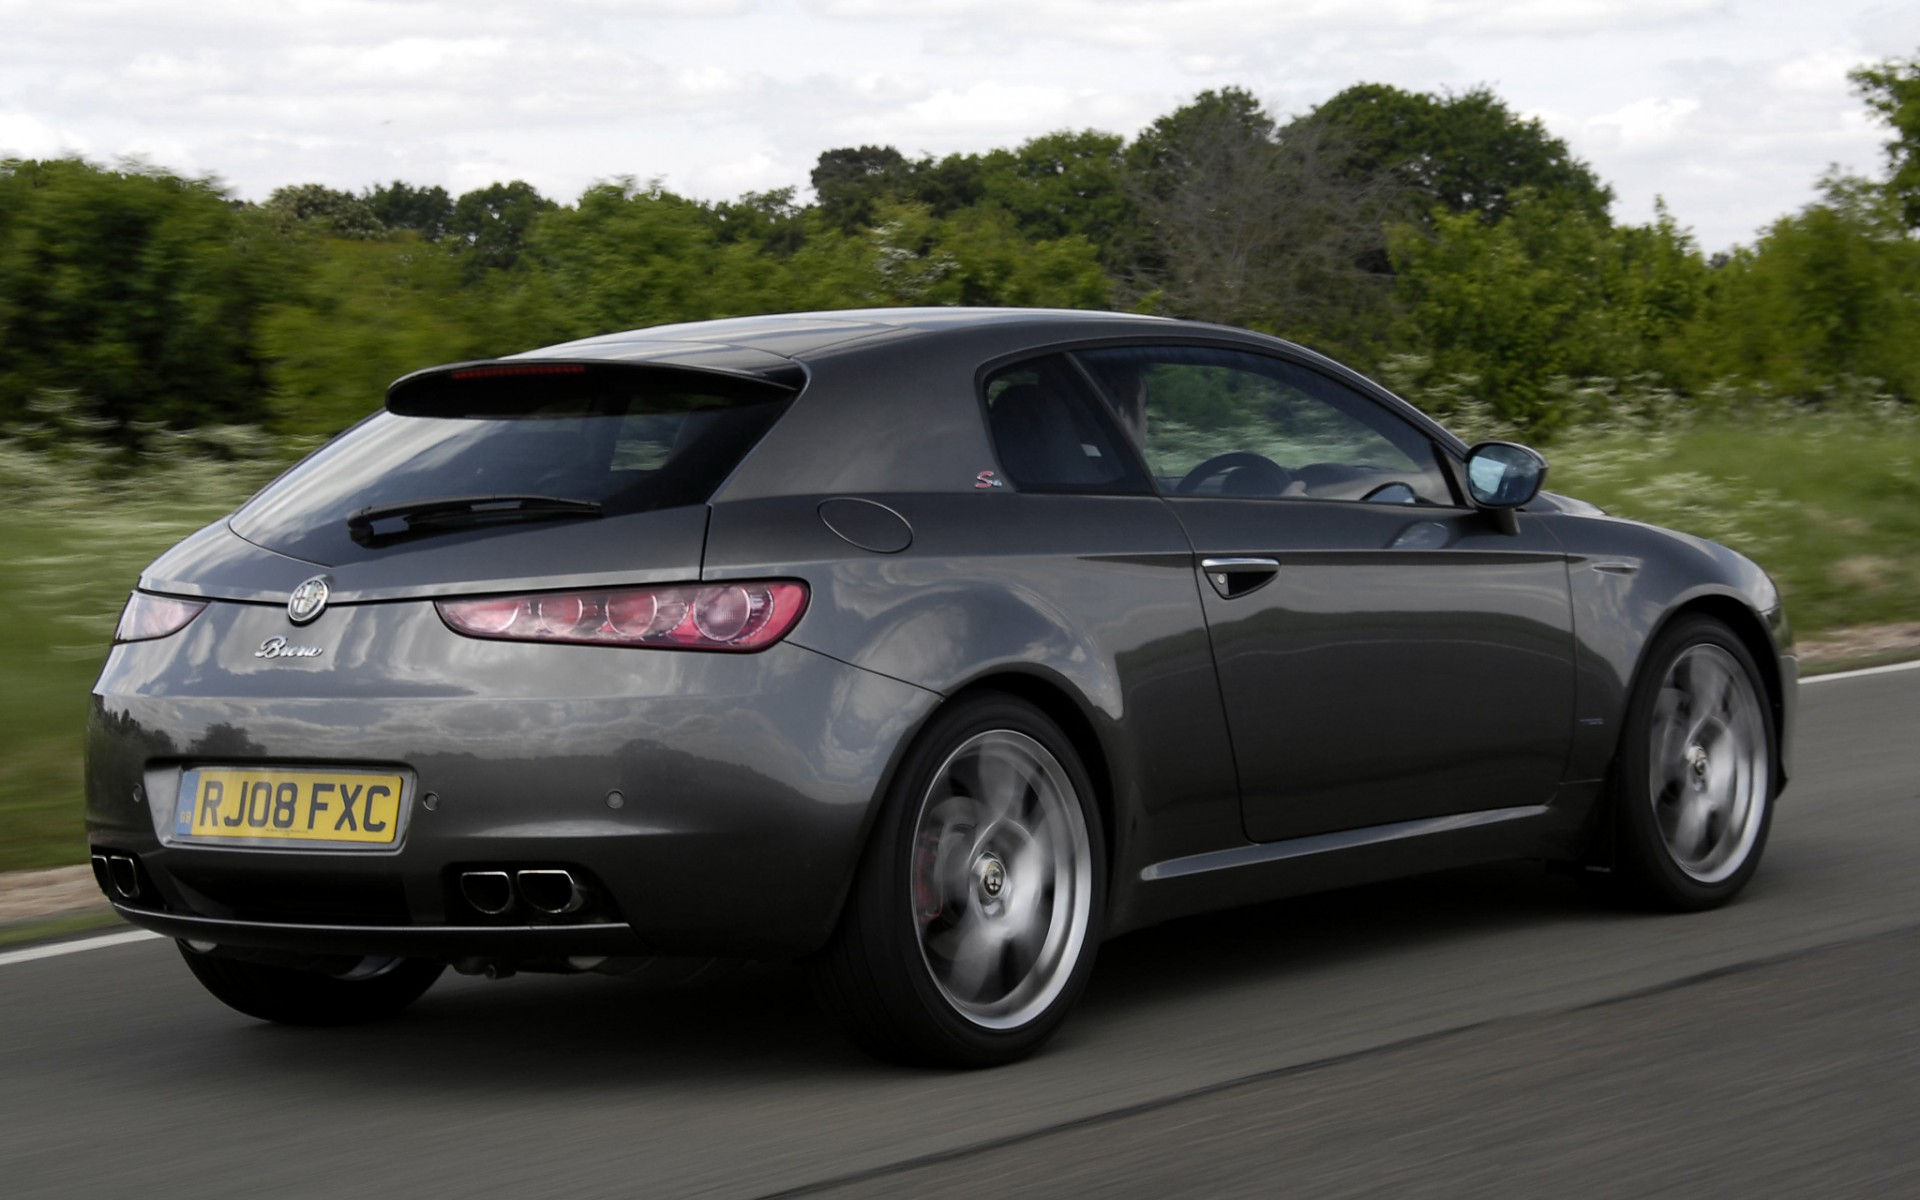 Alfa romeo gtv v6 review 10